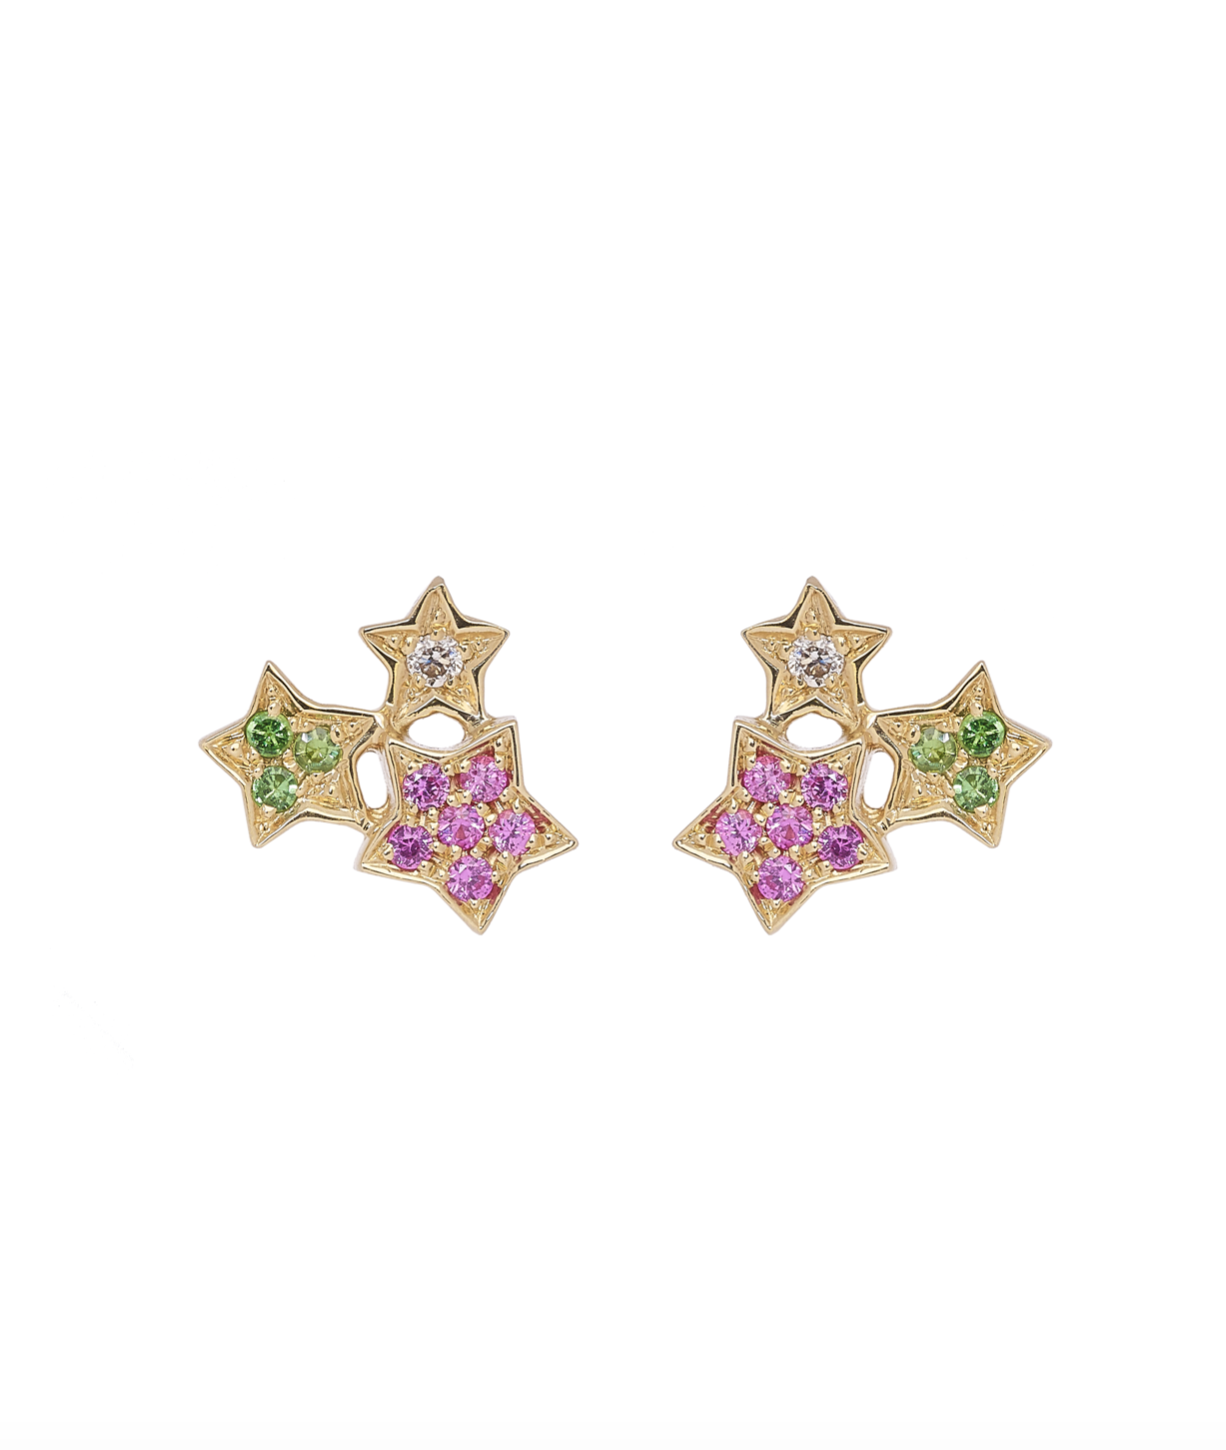 Golden Star Cluster Earrings by Marmari on curated-crowd.com